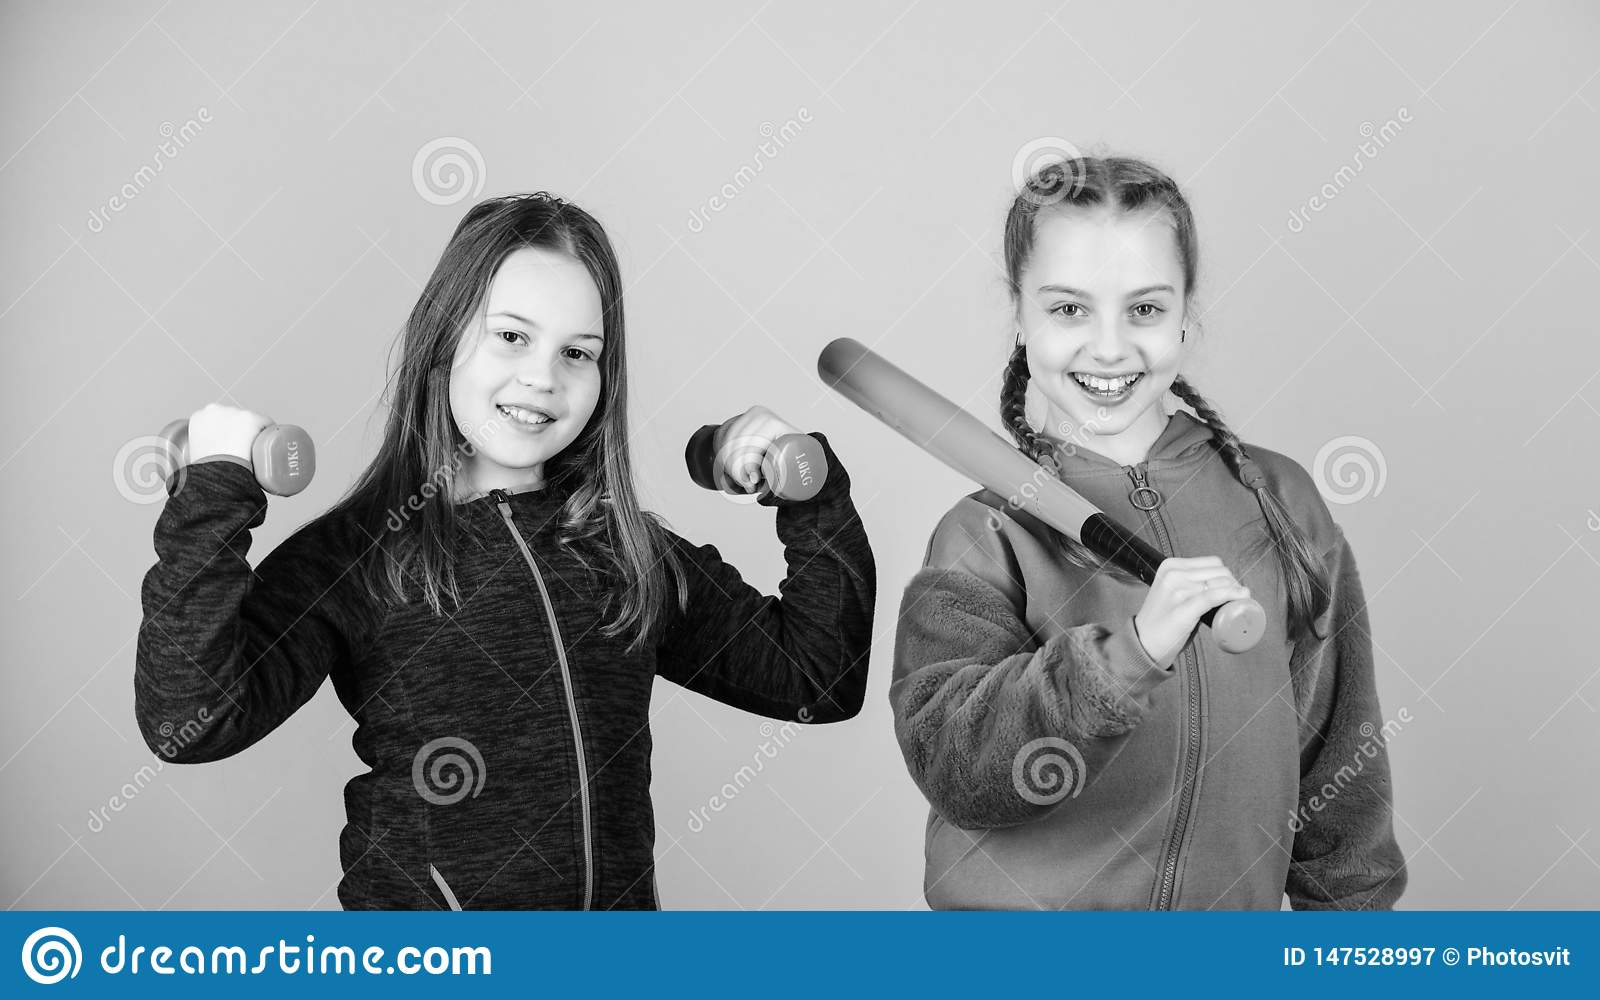 Girls cute kids with sport equipment dumbbells and baseball bat. We love sport. Child might excel in completely